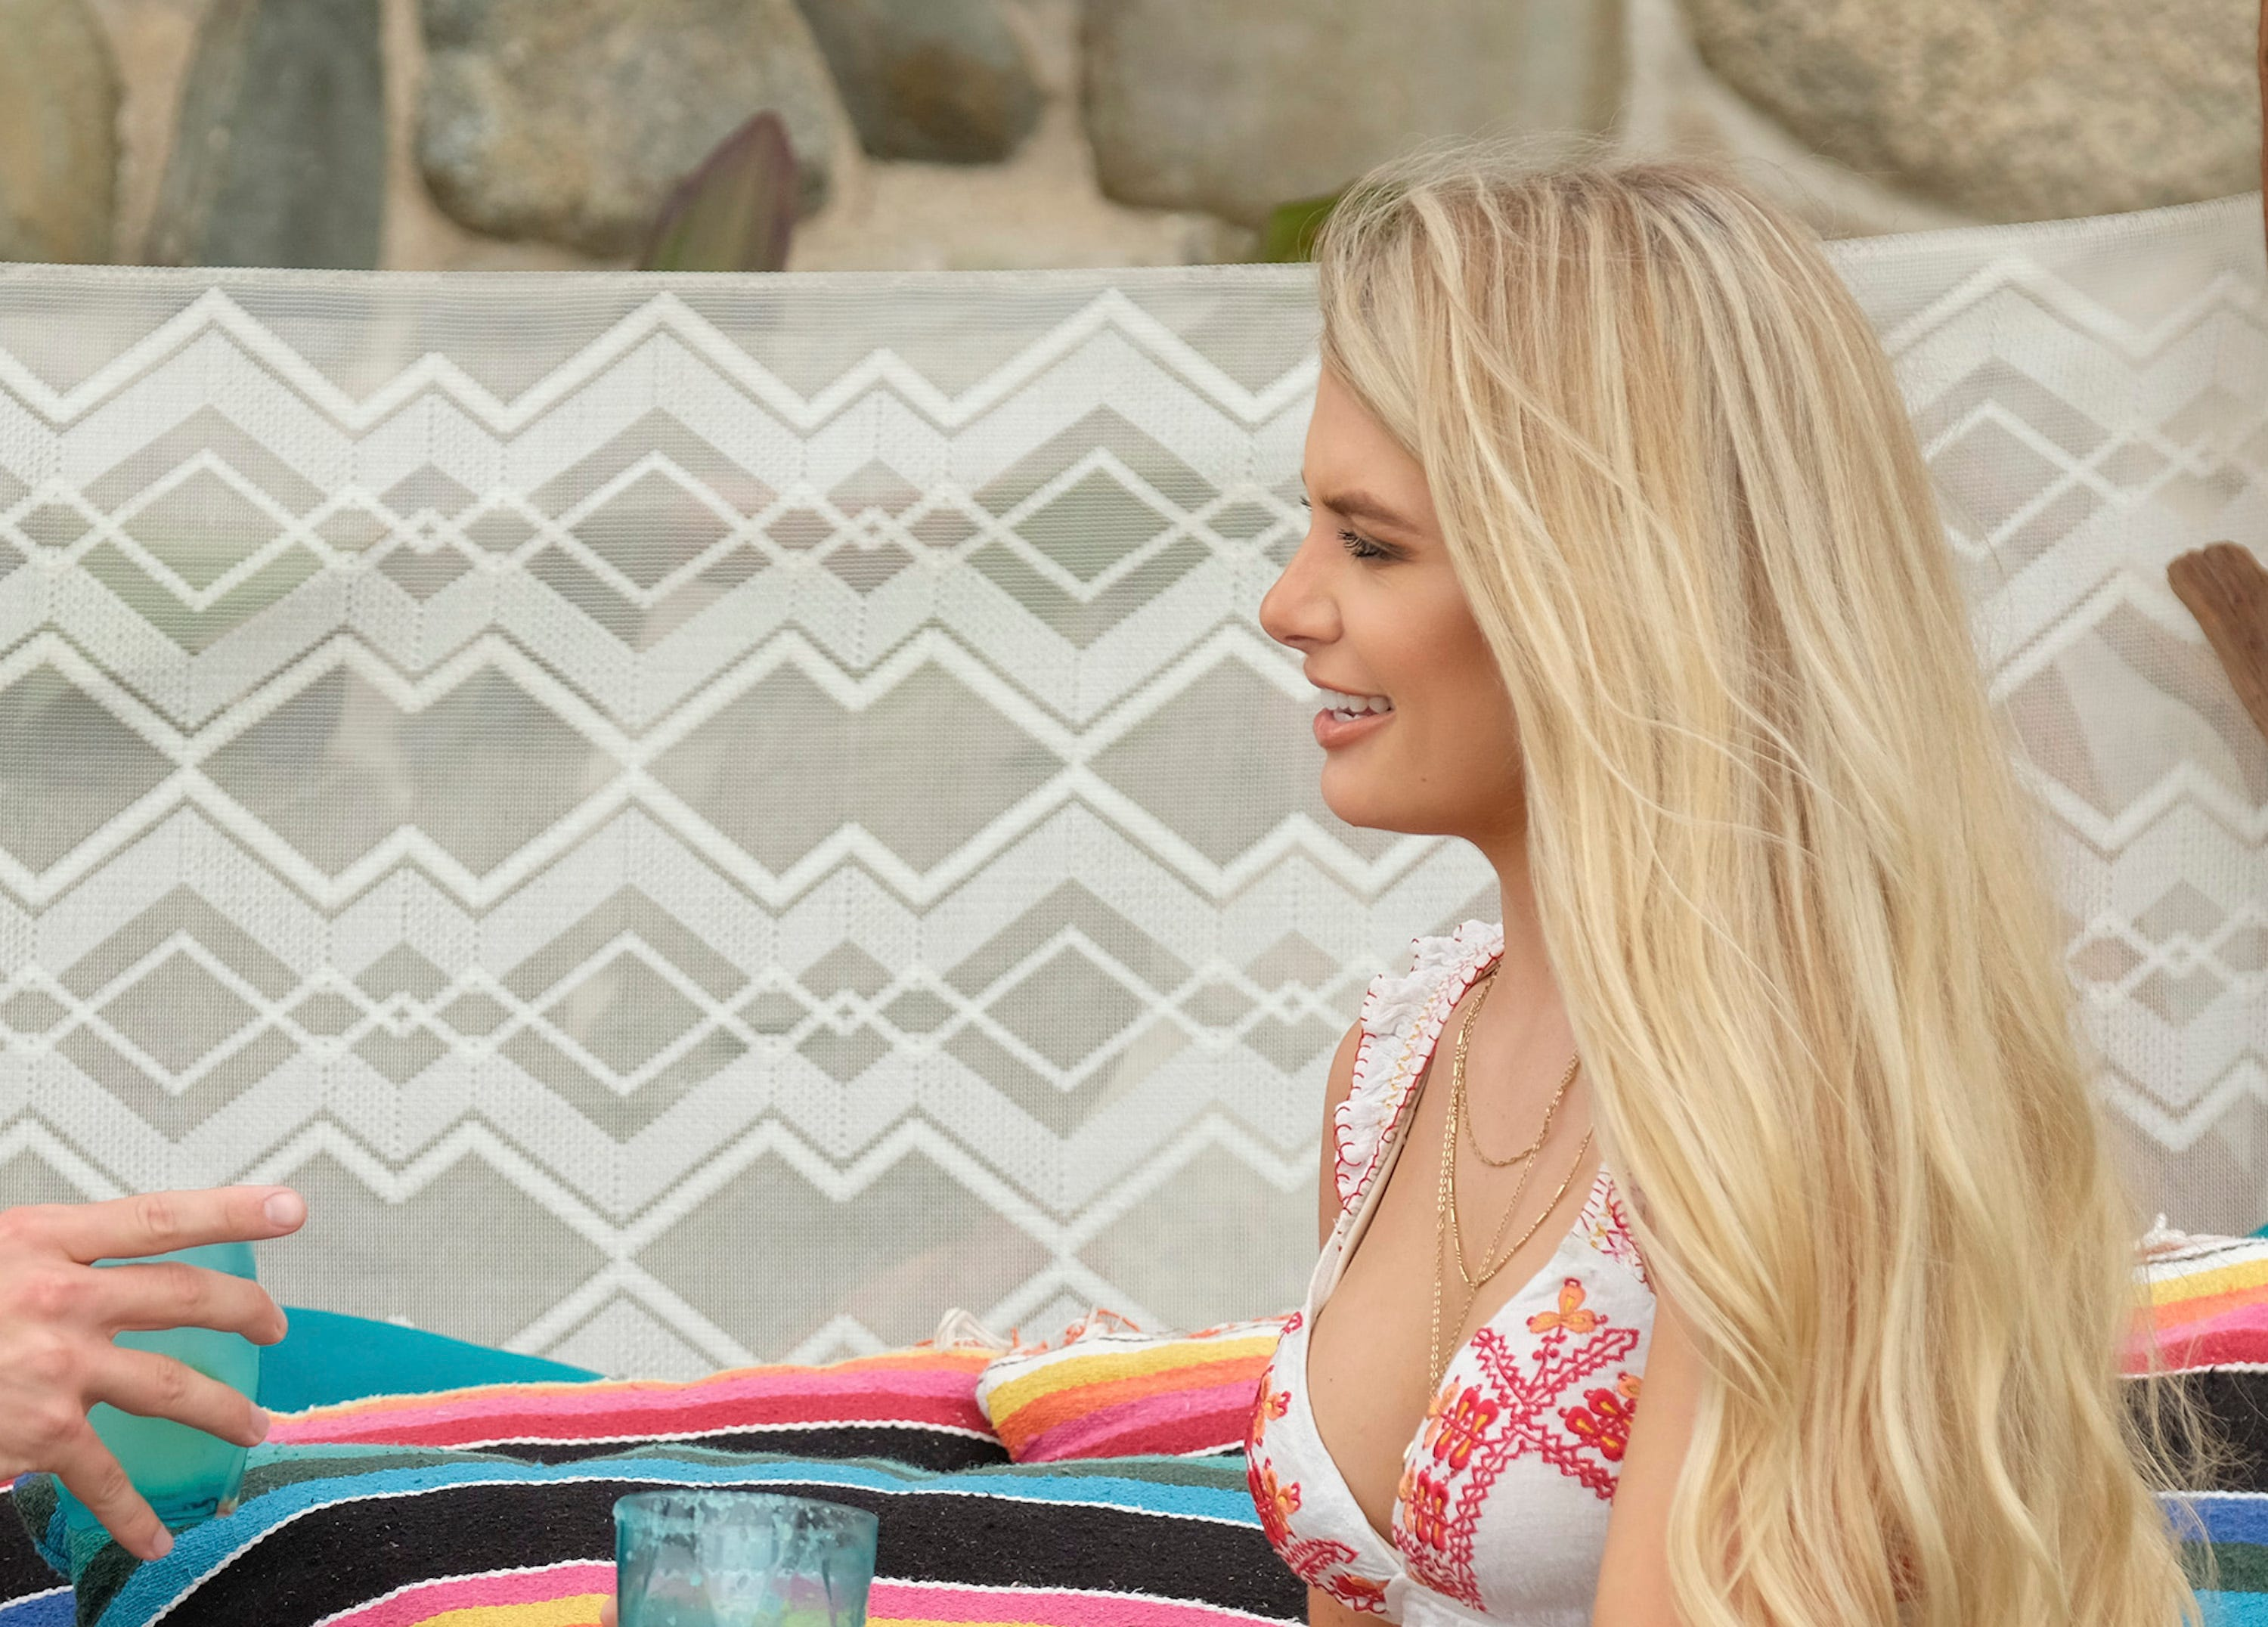 Bachelor In Paradise Season 6, Episode 6 Recap: It's A Love Story, Baby